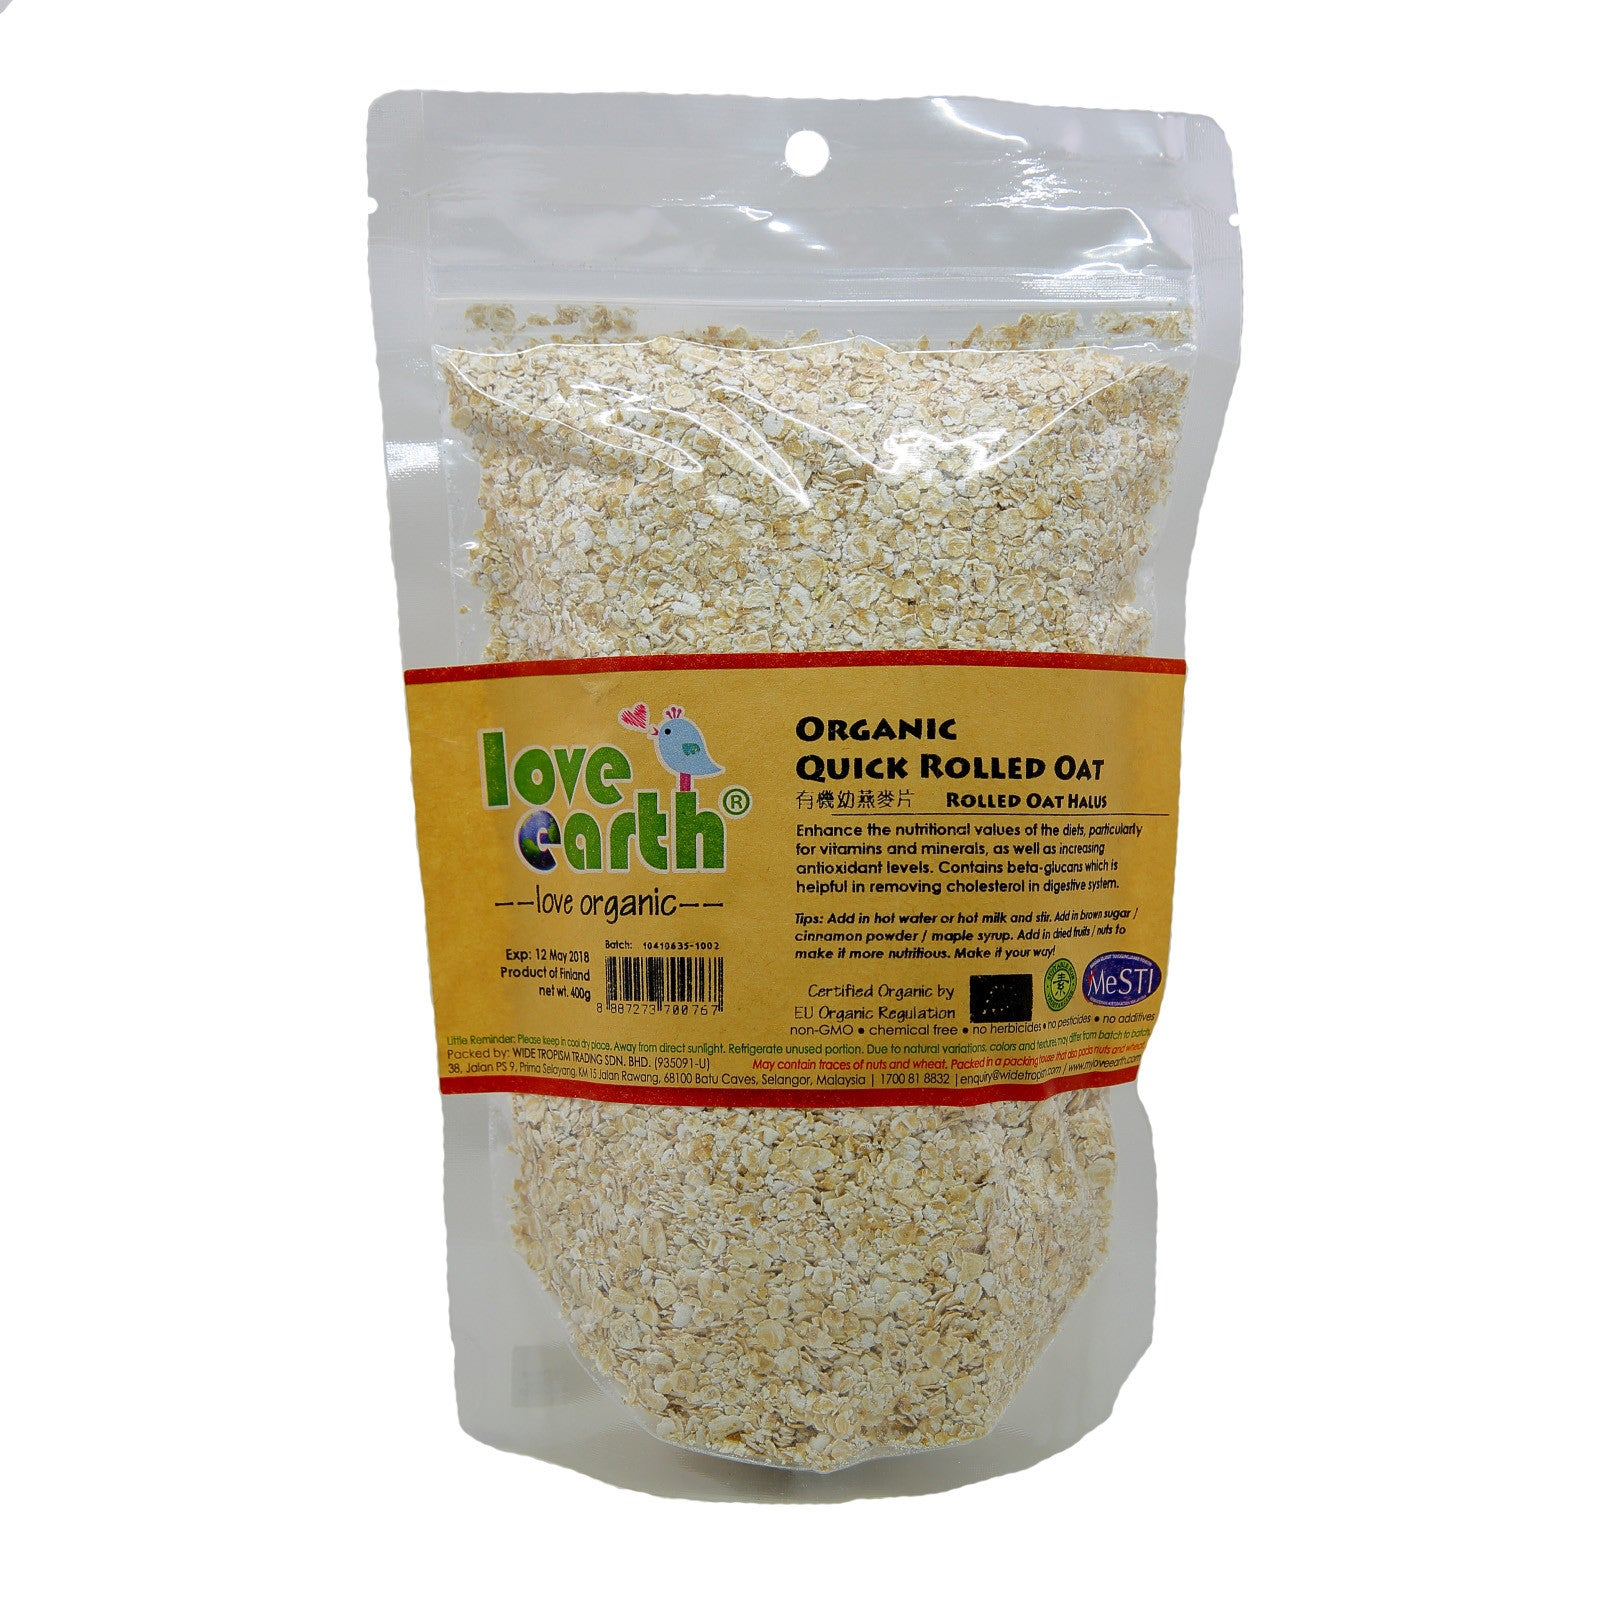 Love Earth Organic Rolled Oat - Quick Rolled Oat - 400g